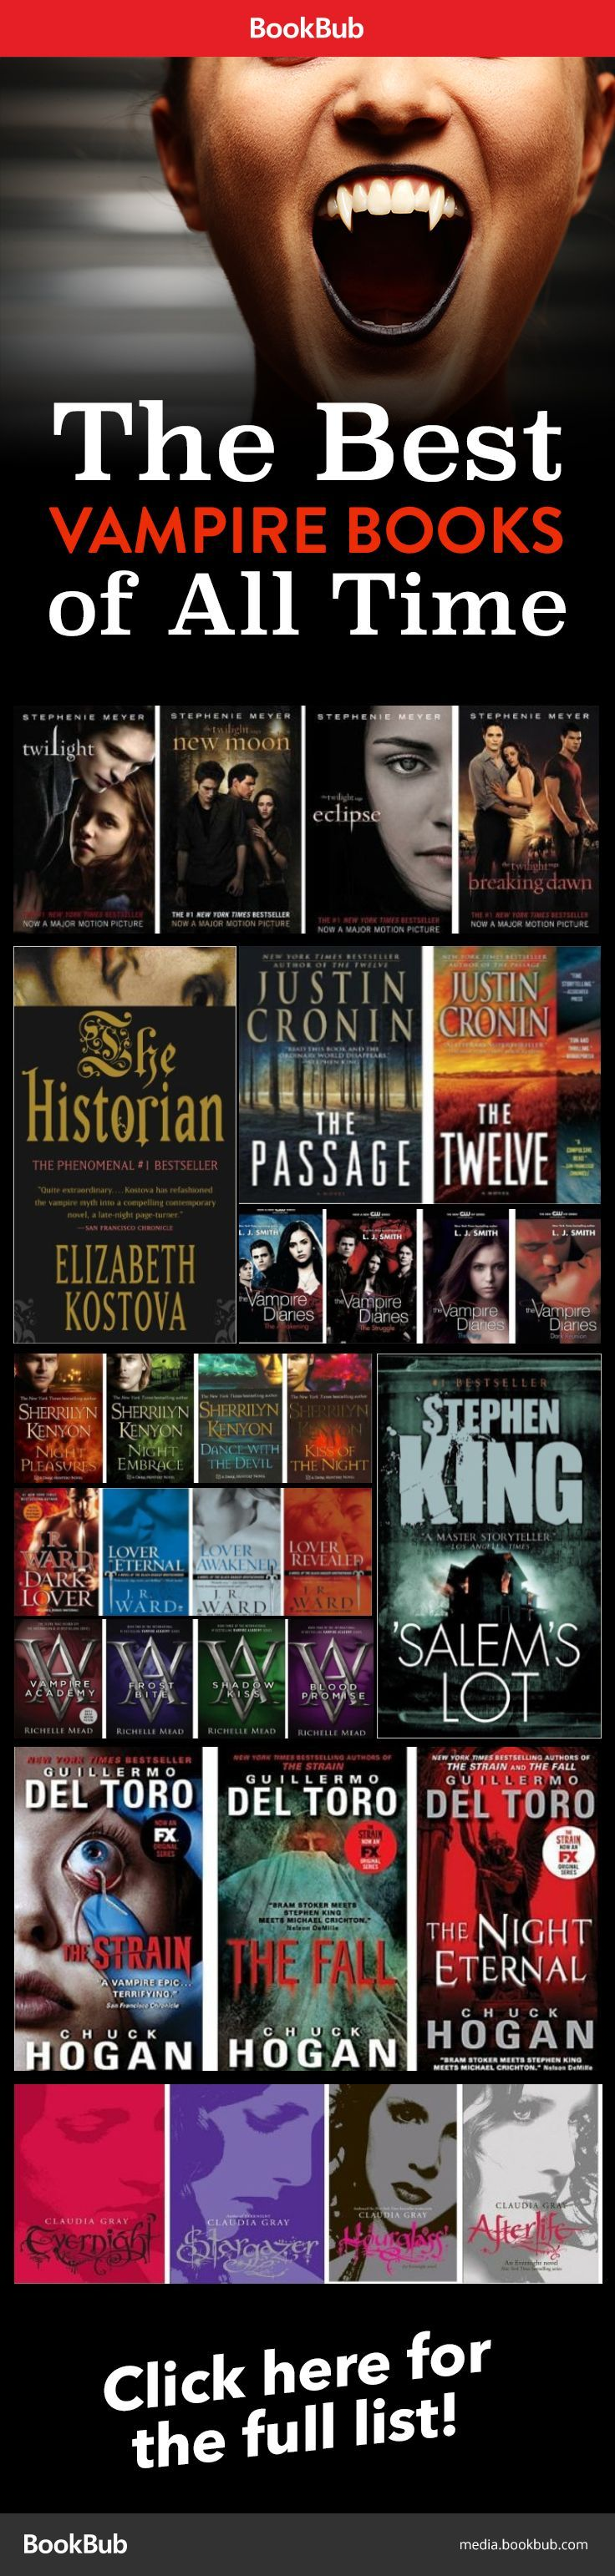 17 of the Best Books About Vampires. From horror to suspense to romance, here are our favorite vampire books.